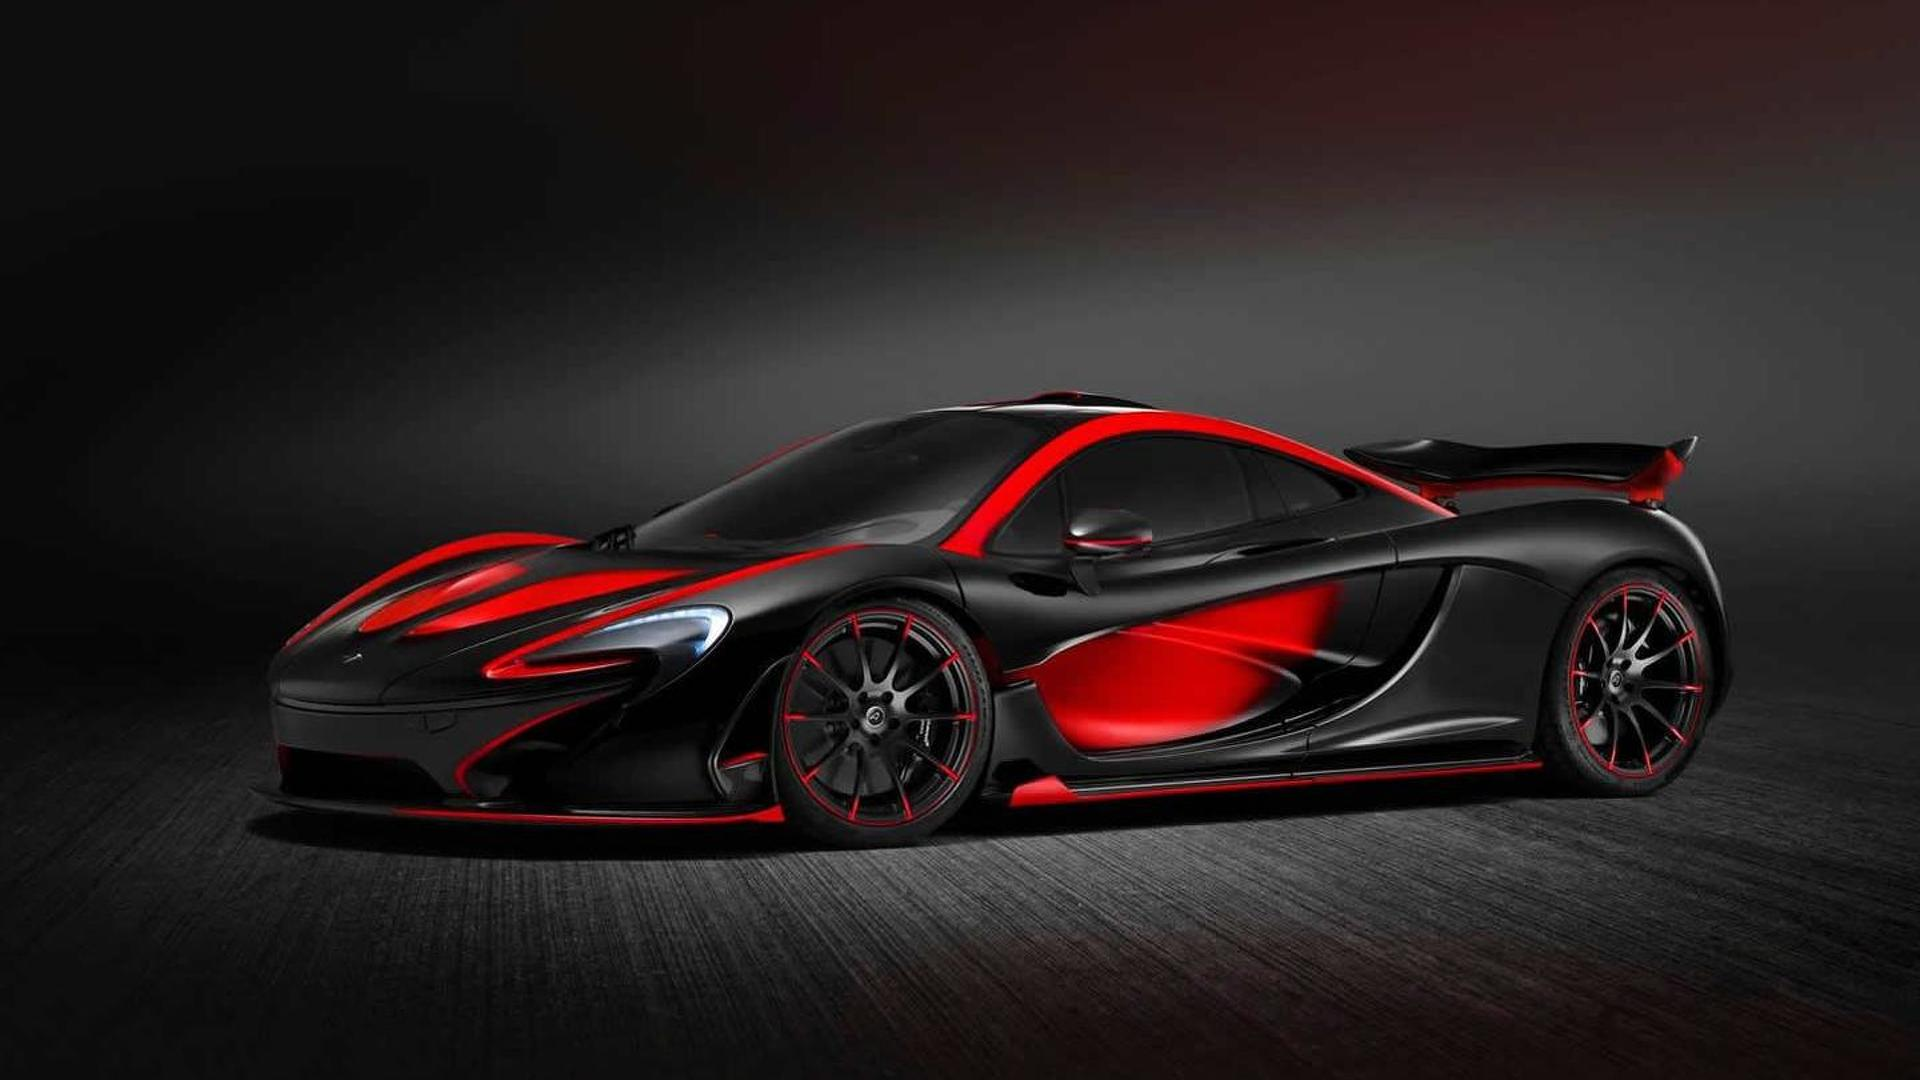 Black And Red >> Latest Mclaren P1 By Mso Looks Devilish With Black And Red Theme